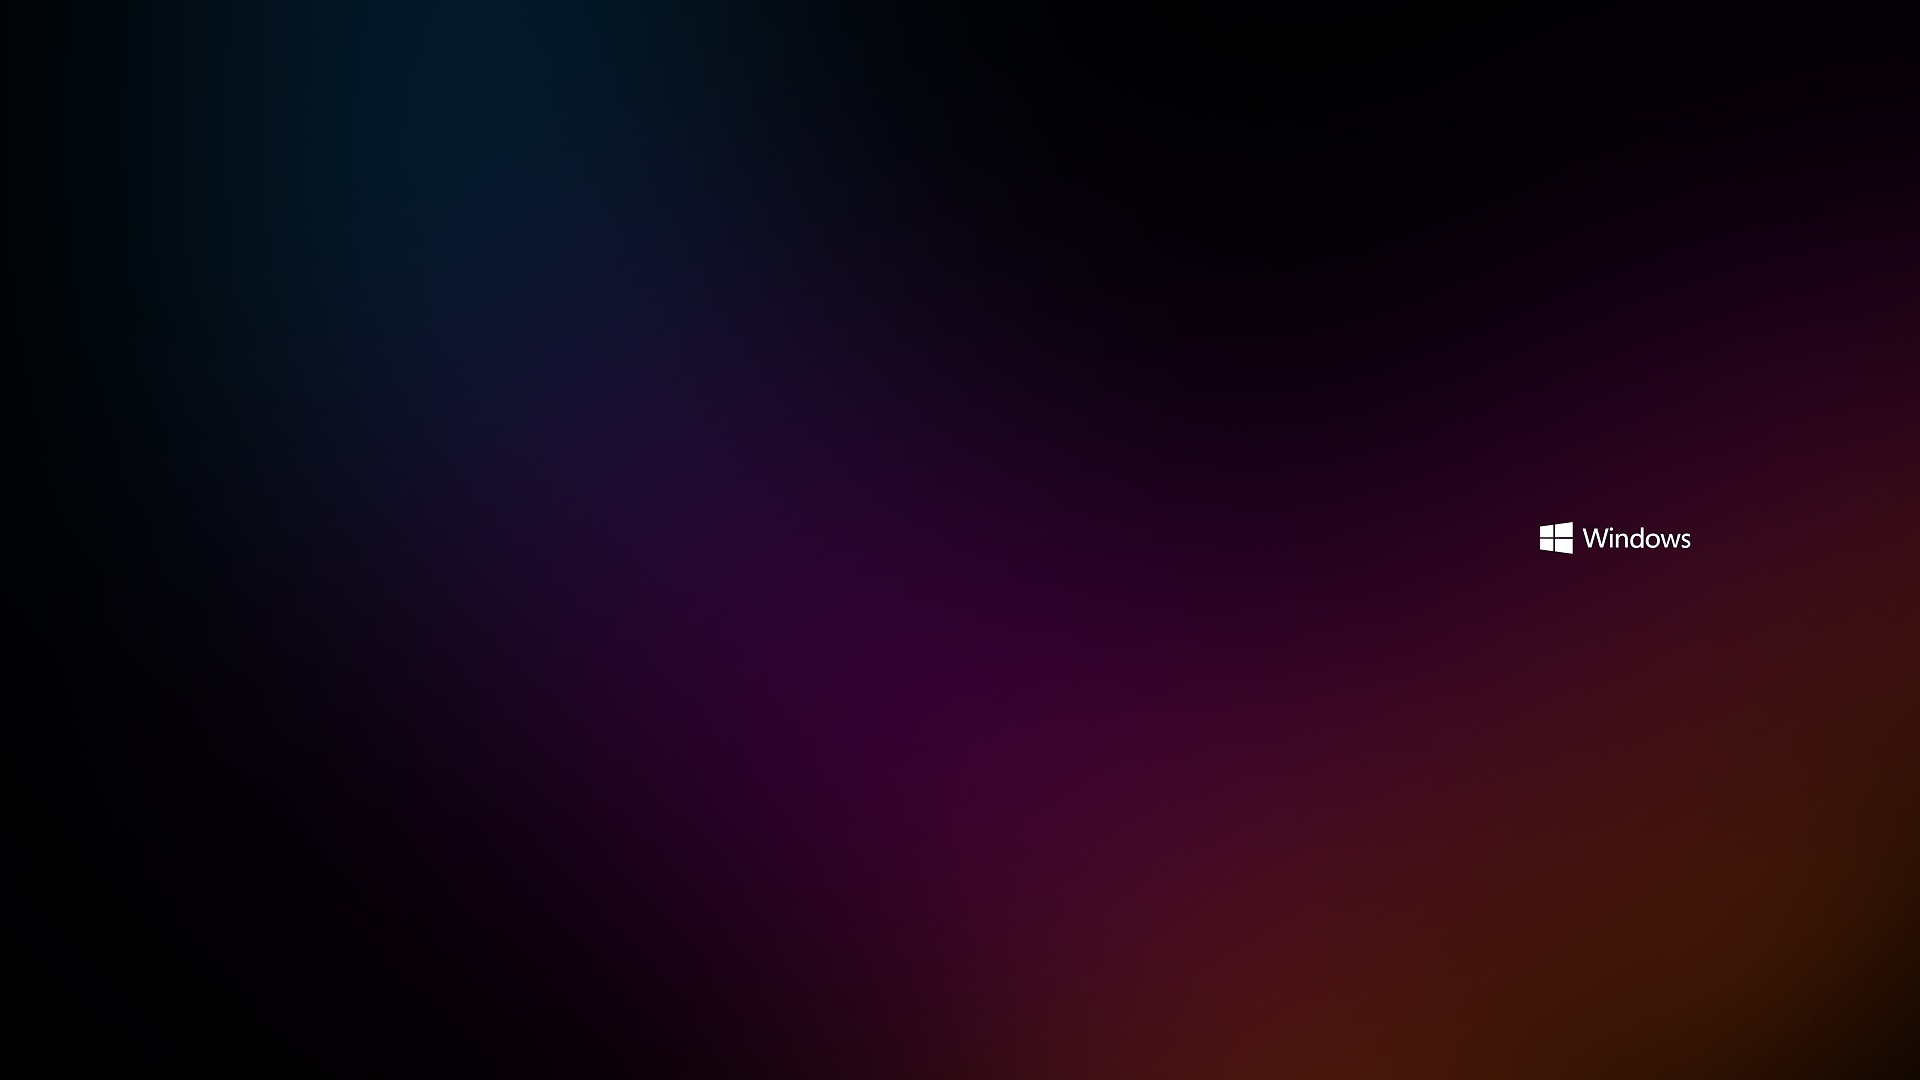 microsoft surface wallpapers abstract - photo #4